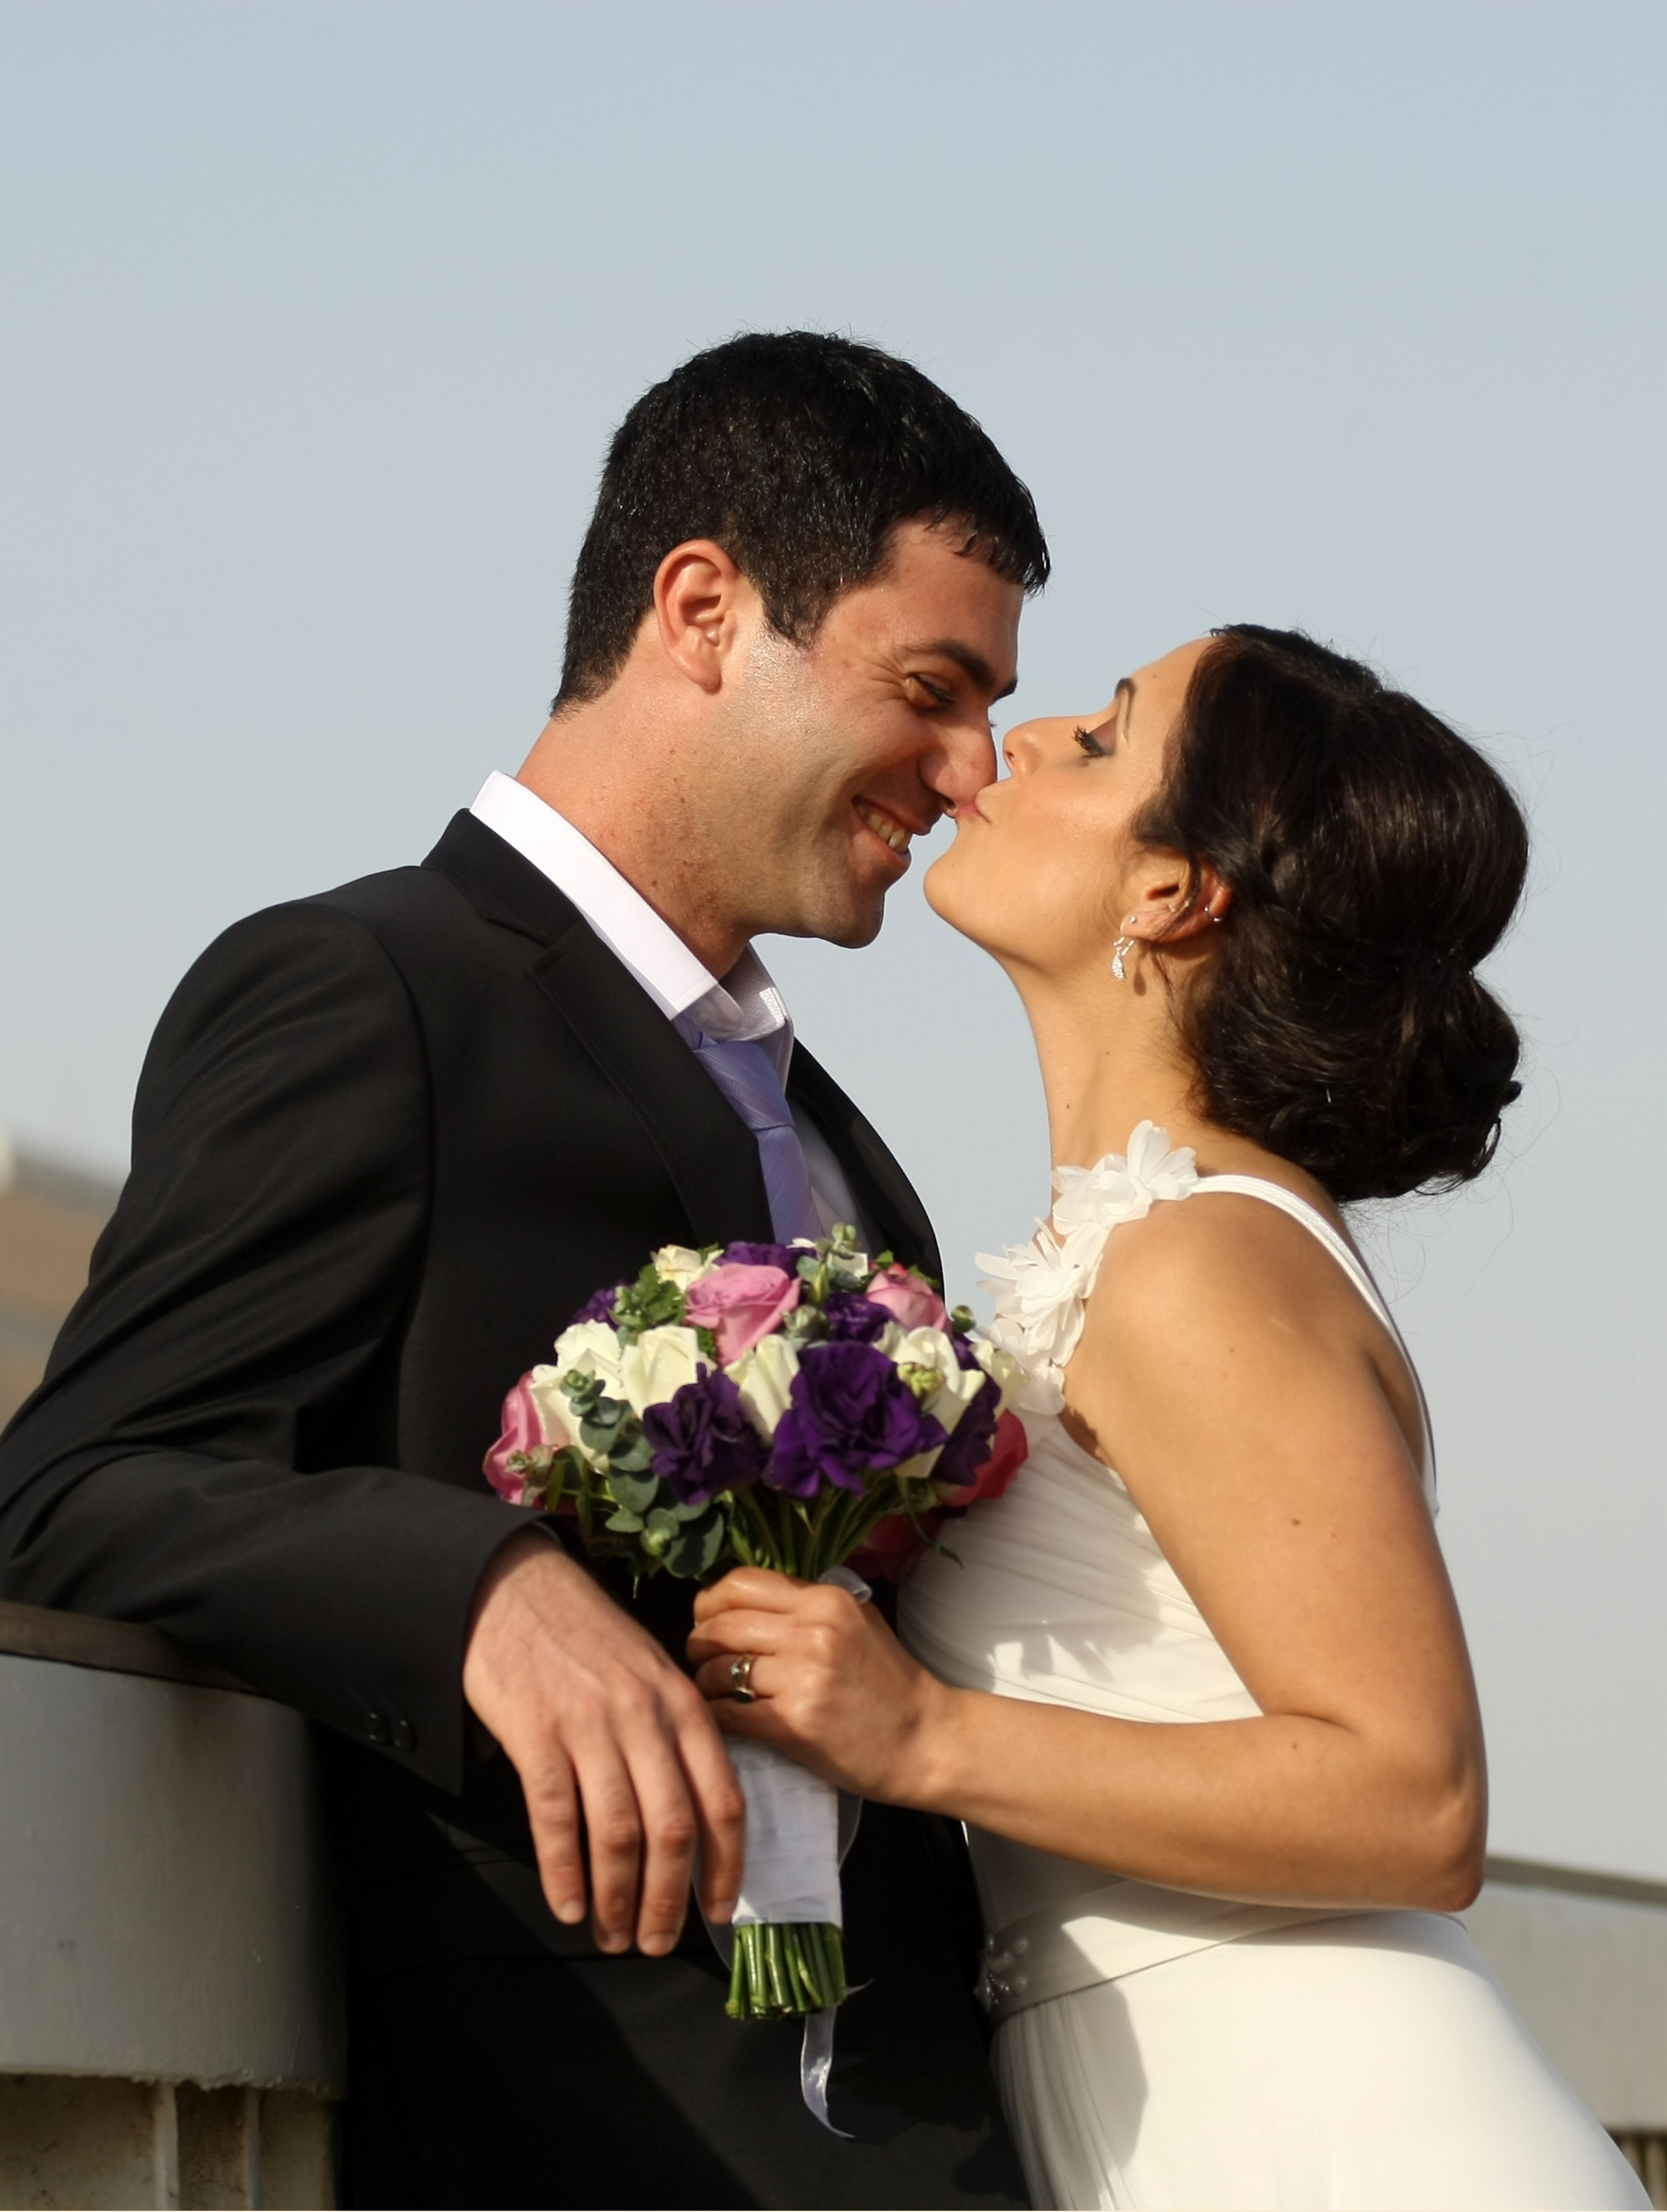 Sharon & Idan's Wedding 13.3.12